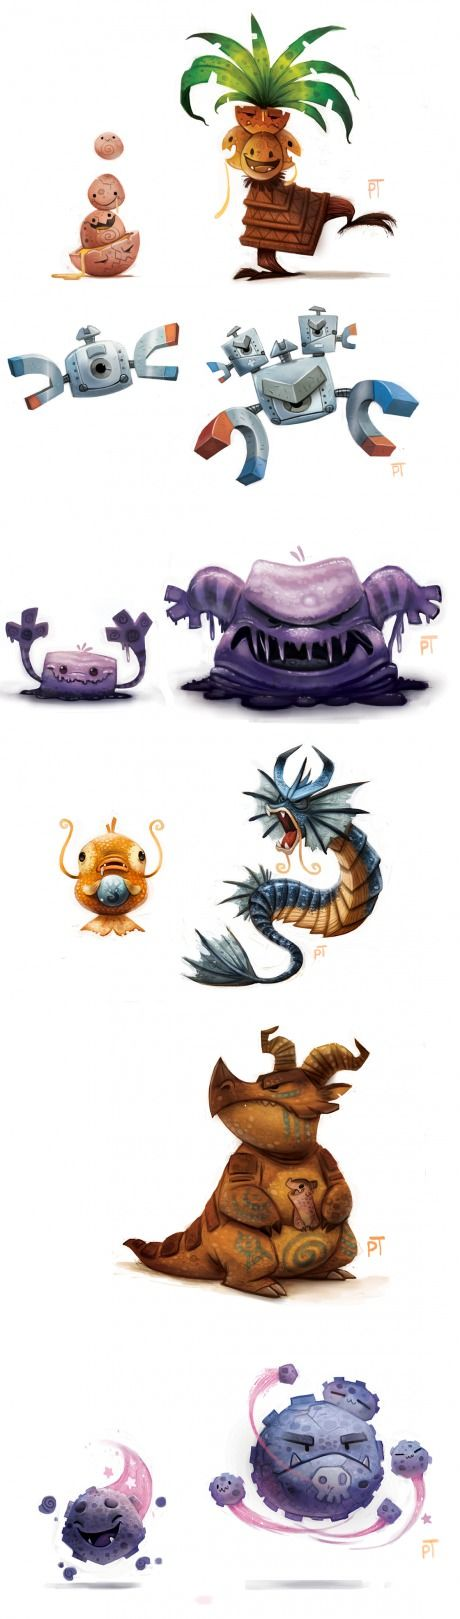 Imagine a pokemon game with this art style.  The artist is called Expired Cryptid-Creations is DA